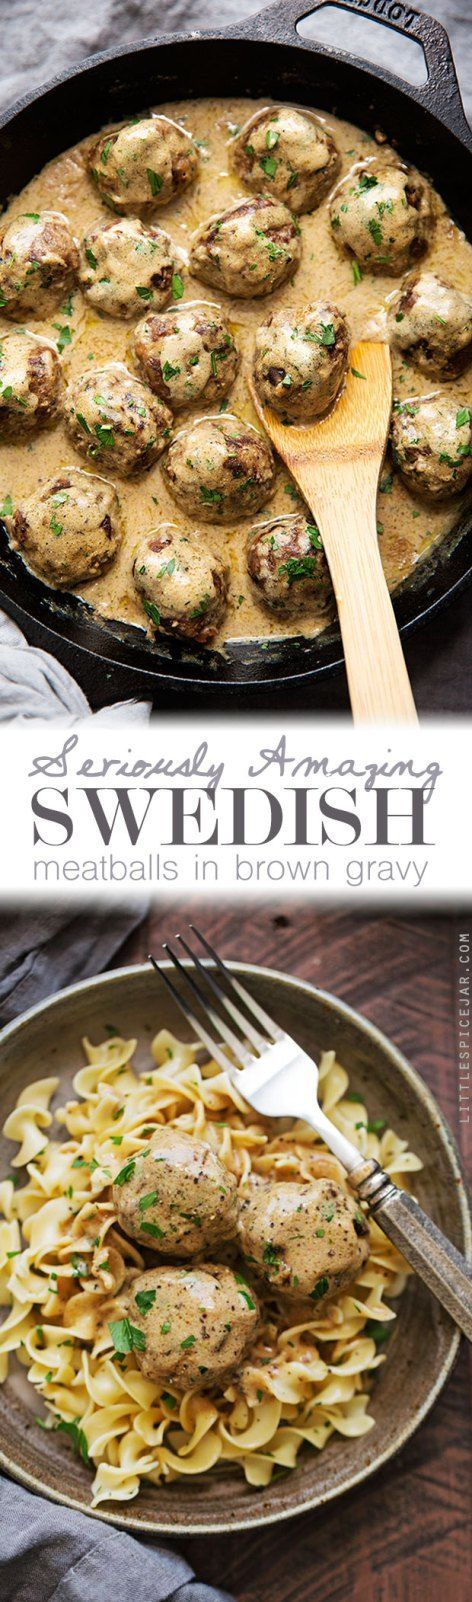 Seriously Amazing Swedish Meatballs in Brown Gravy - hearty and comforting meatballs in the most delicious brown gravy ever! #swedishmeatballs #browngravy #meatballs   Littlespicejar.com